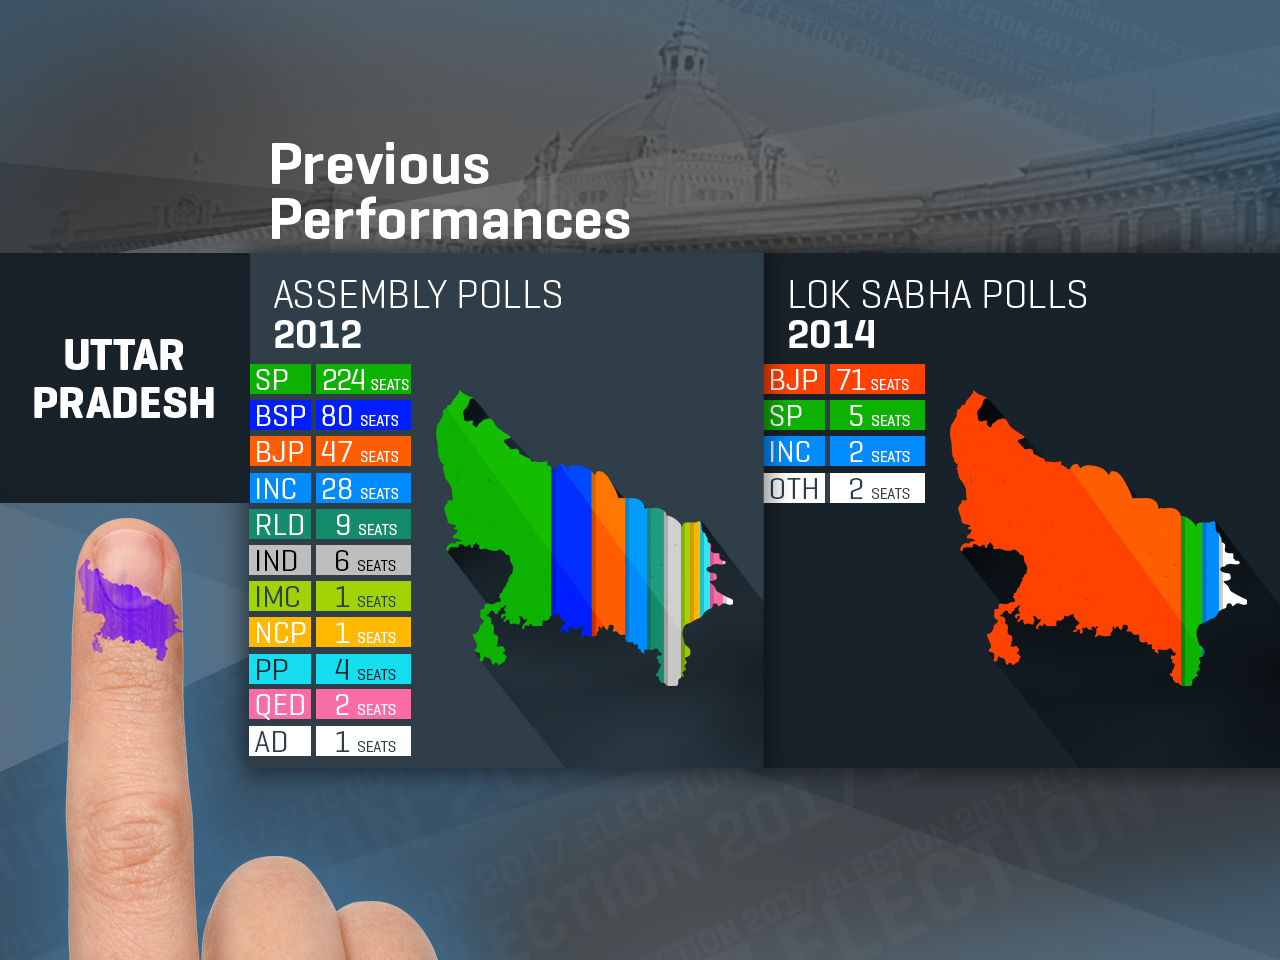 Up election 2017 behind sp congress alliance lies the open pursuit of a polarisating agenda firstpost - Up Election Highlights Polling Closed For Third Phase 61 16 Voter Turnout Recorded Till 5 Pm